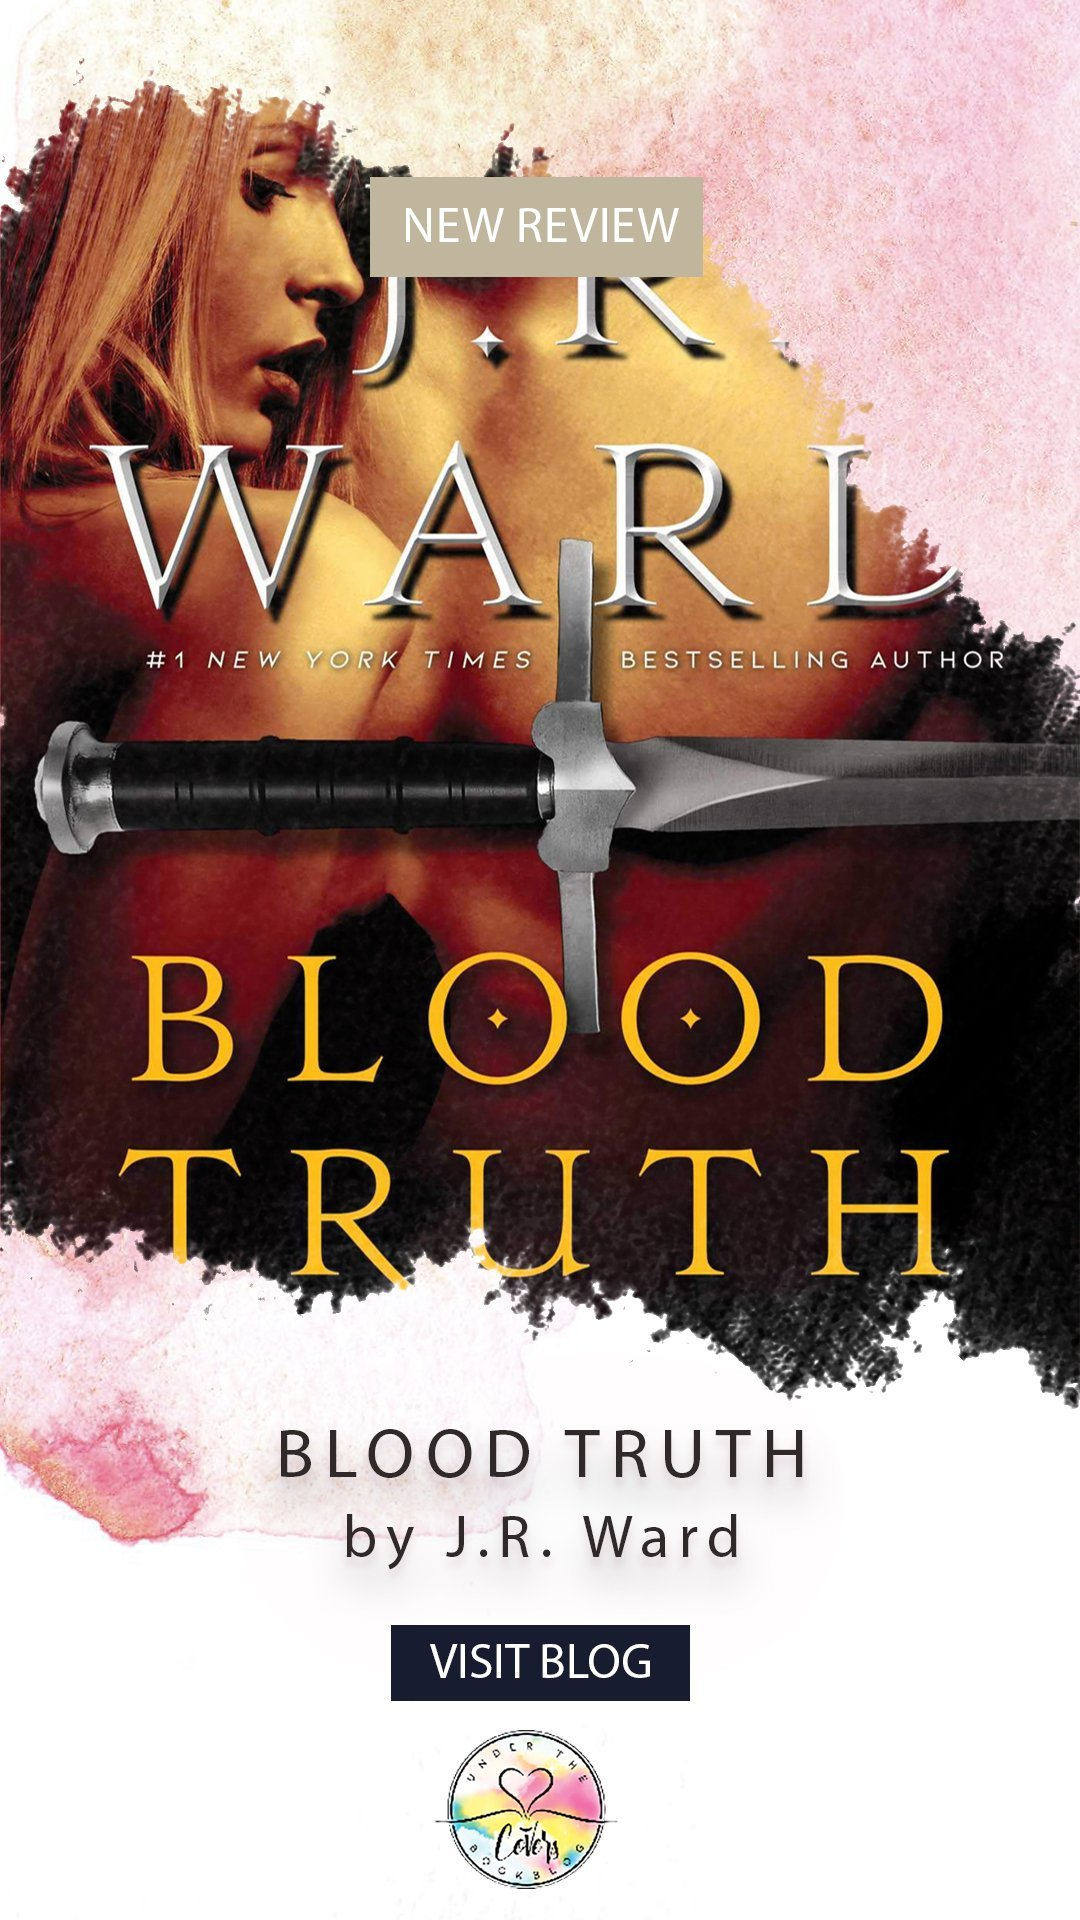 ARC Review: Blood Truth by J.R. Ward